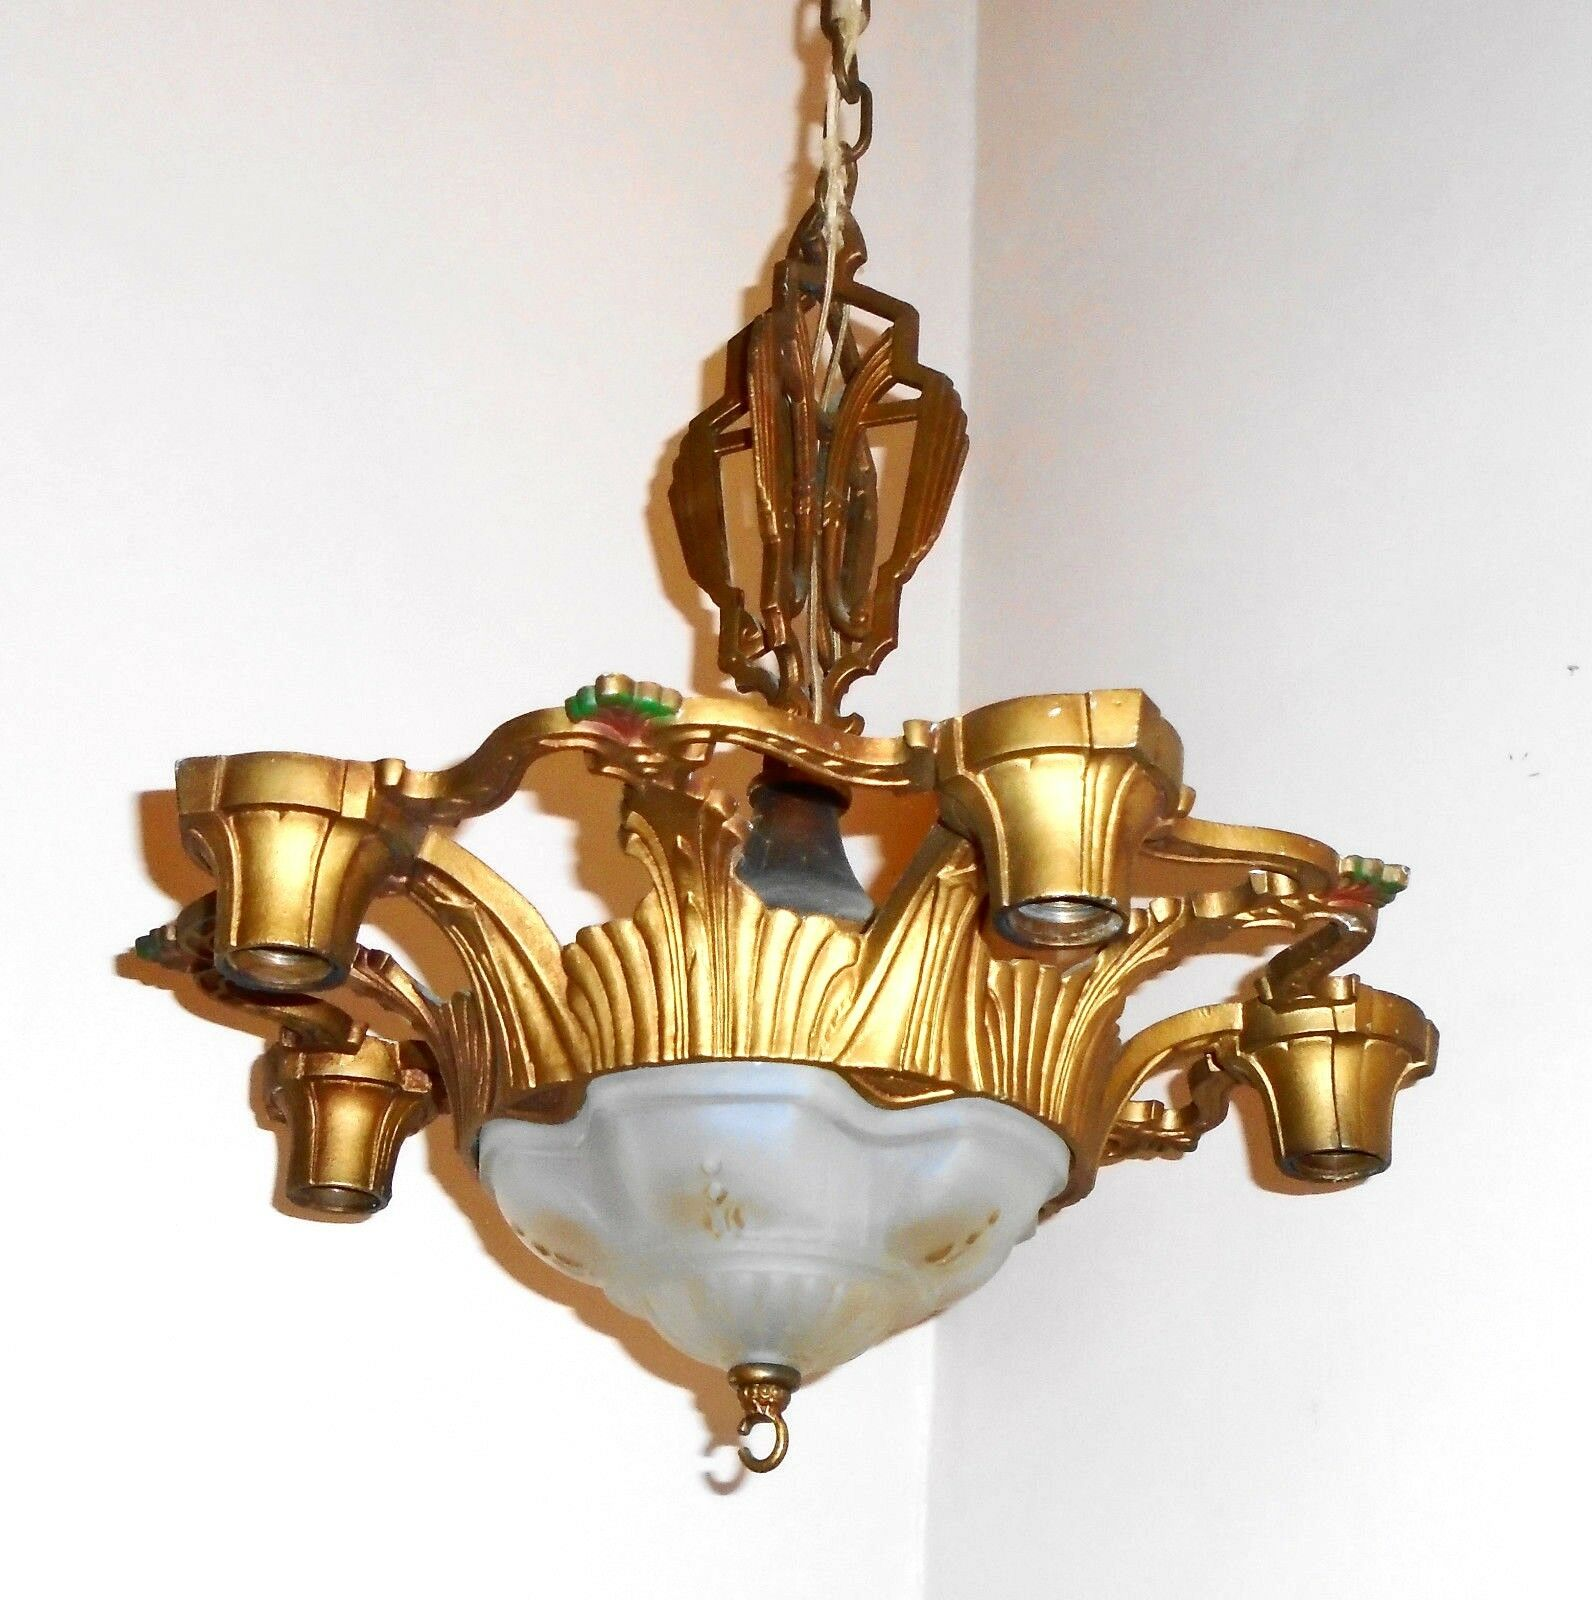 RARE Antique Art Nouveau Polychrome 1920s 6 Light Chandelier Ceiling Fixture